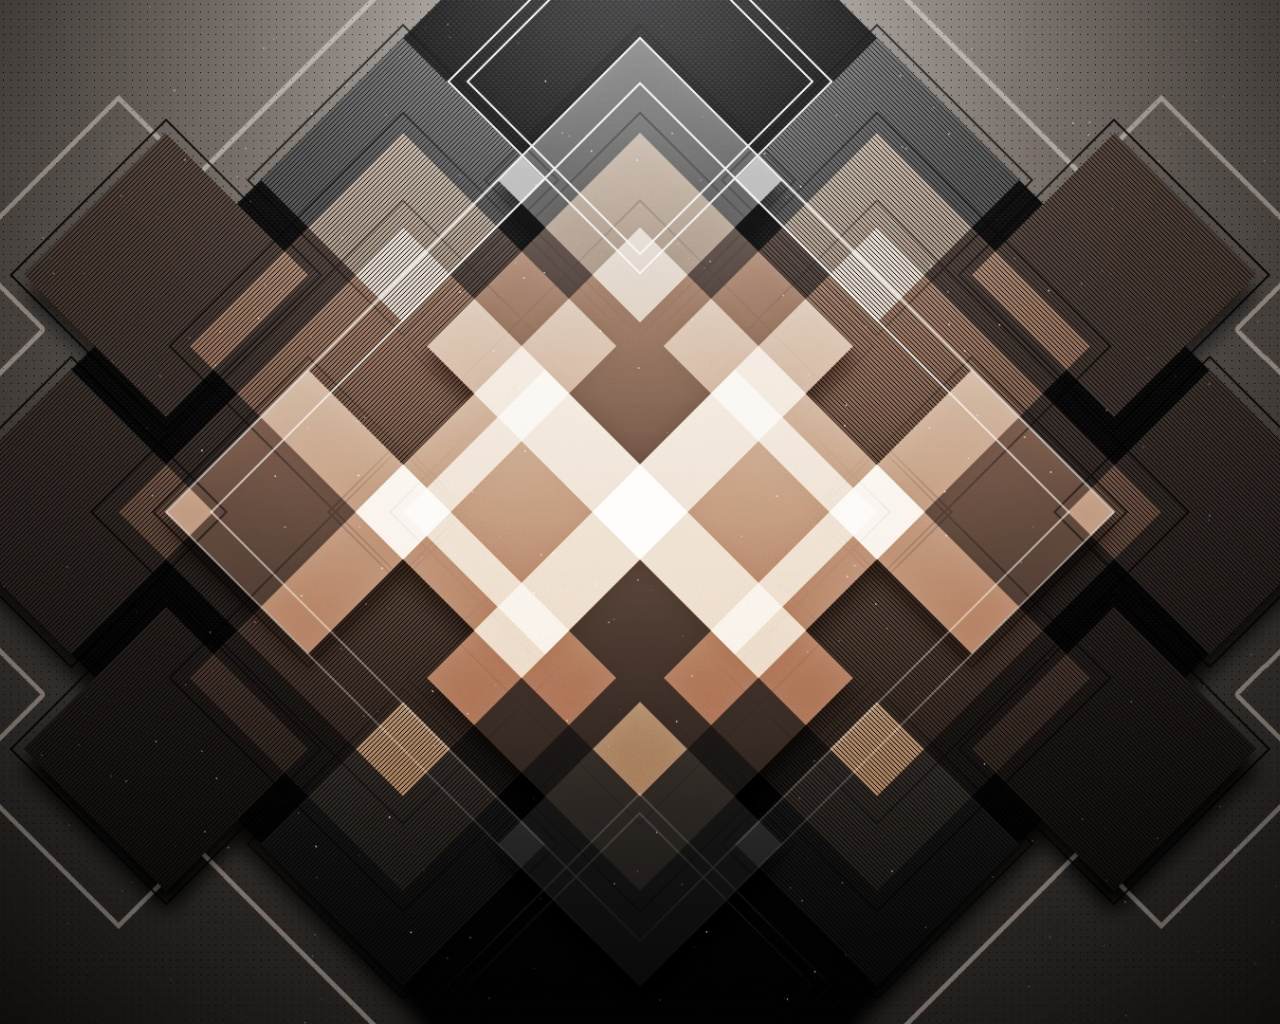 click to free download the wallpaper--3D Abstract Squares, Shapless and in Mess, Yet There is Certain Order Among Them 1280X1024 free wallpaper download